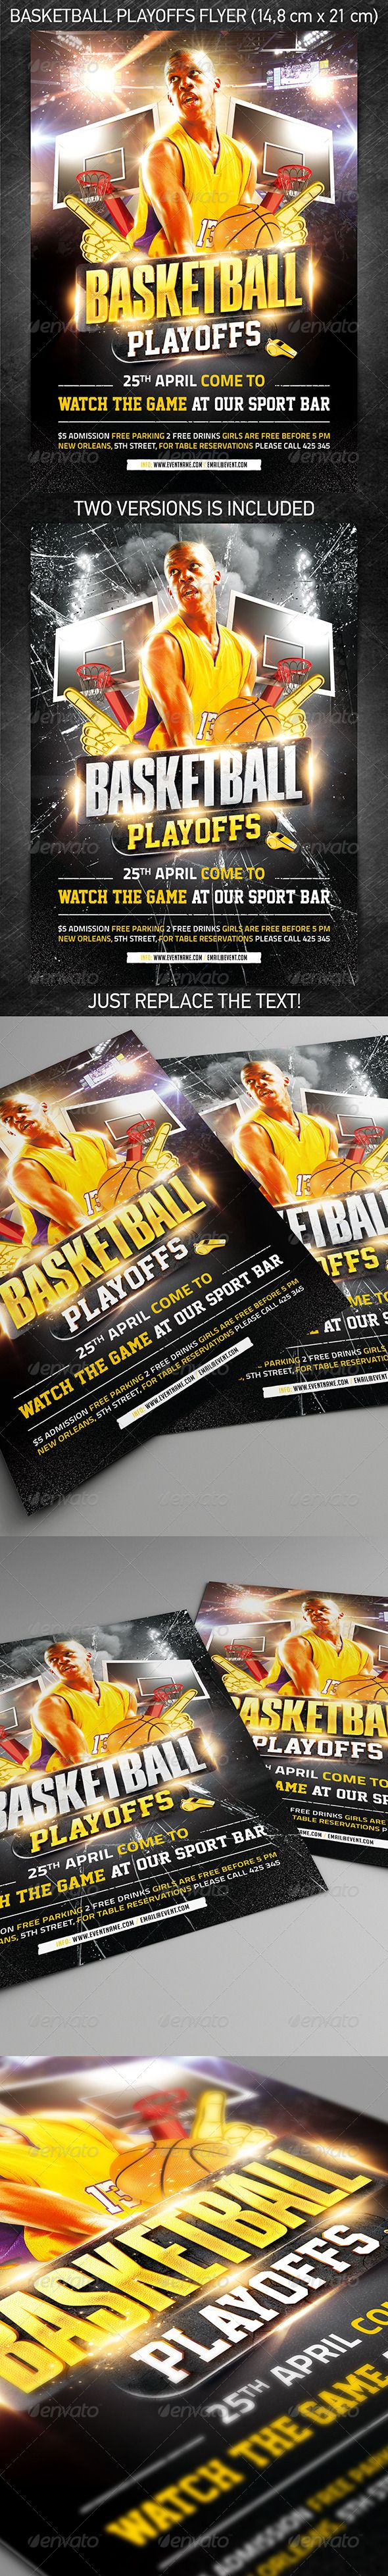 Basketball Playoffs Flyer — Photoshop PSD #ticket #March Madness • Available here → https://graphicriver.net/item/basketball-playoffs-flyer/7384113?ref=pxcr